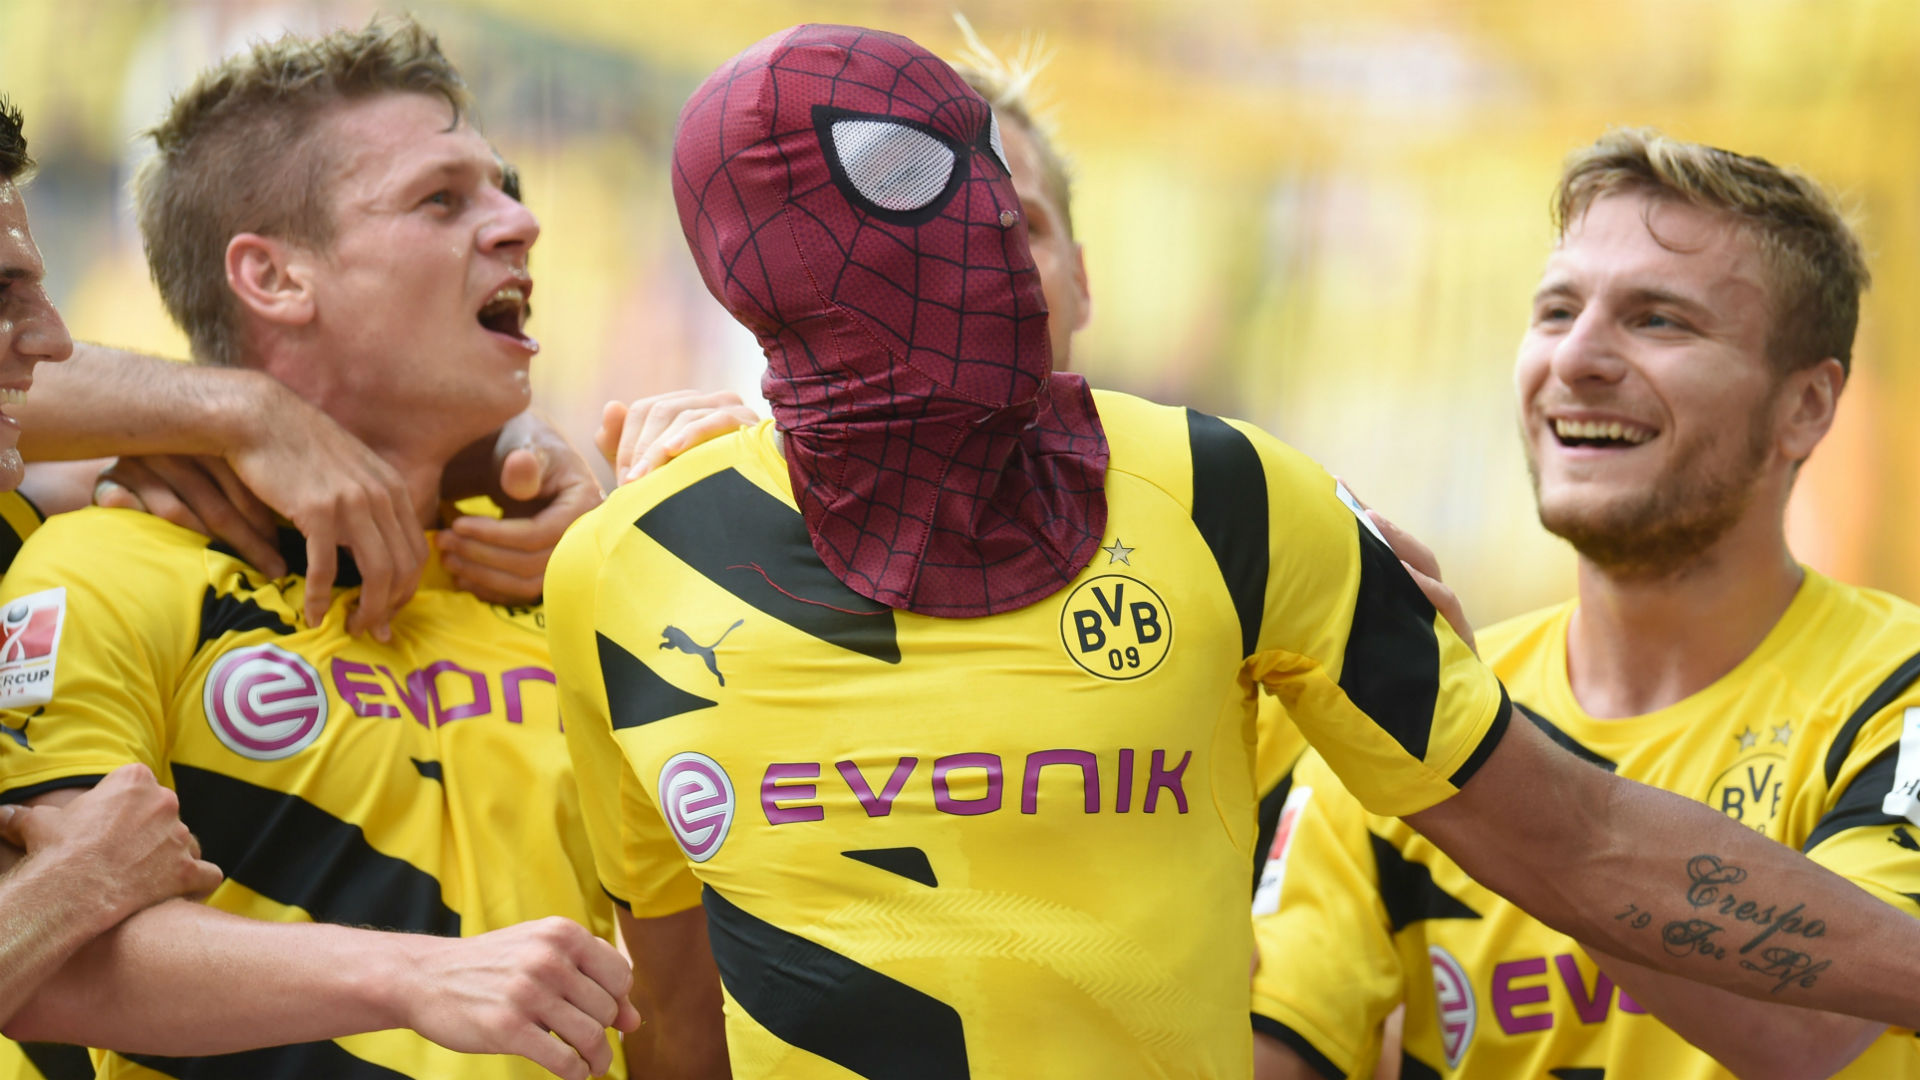 Pierre-Emerick Aubameyang Dortmund Bayern Munich German Supercup 2014